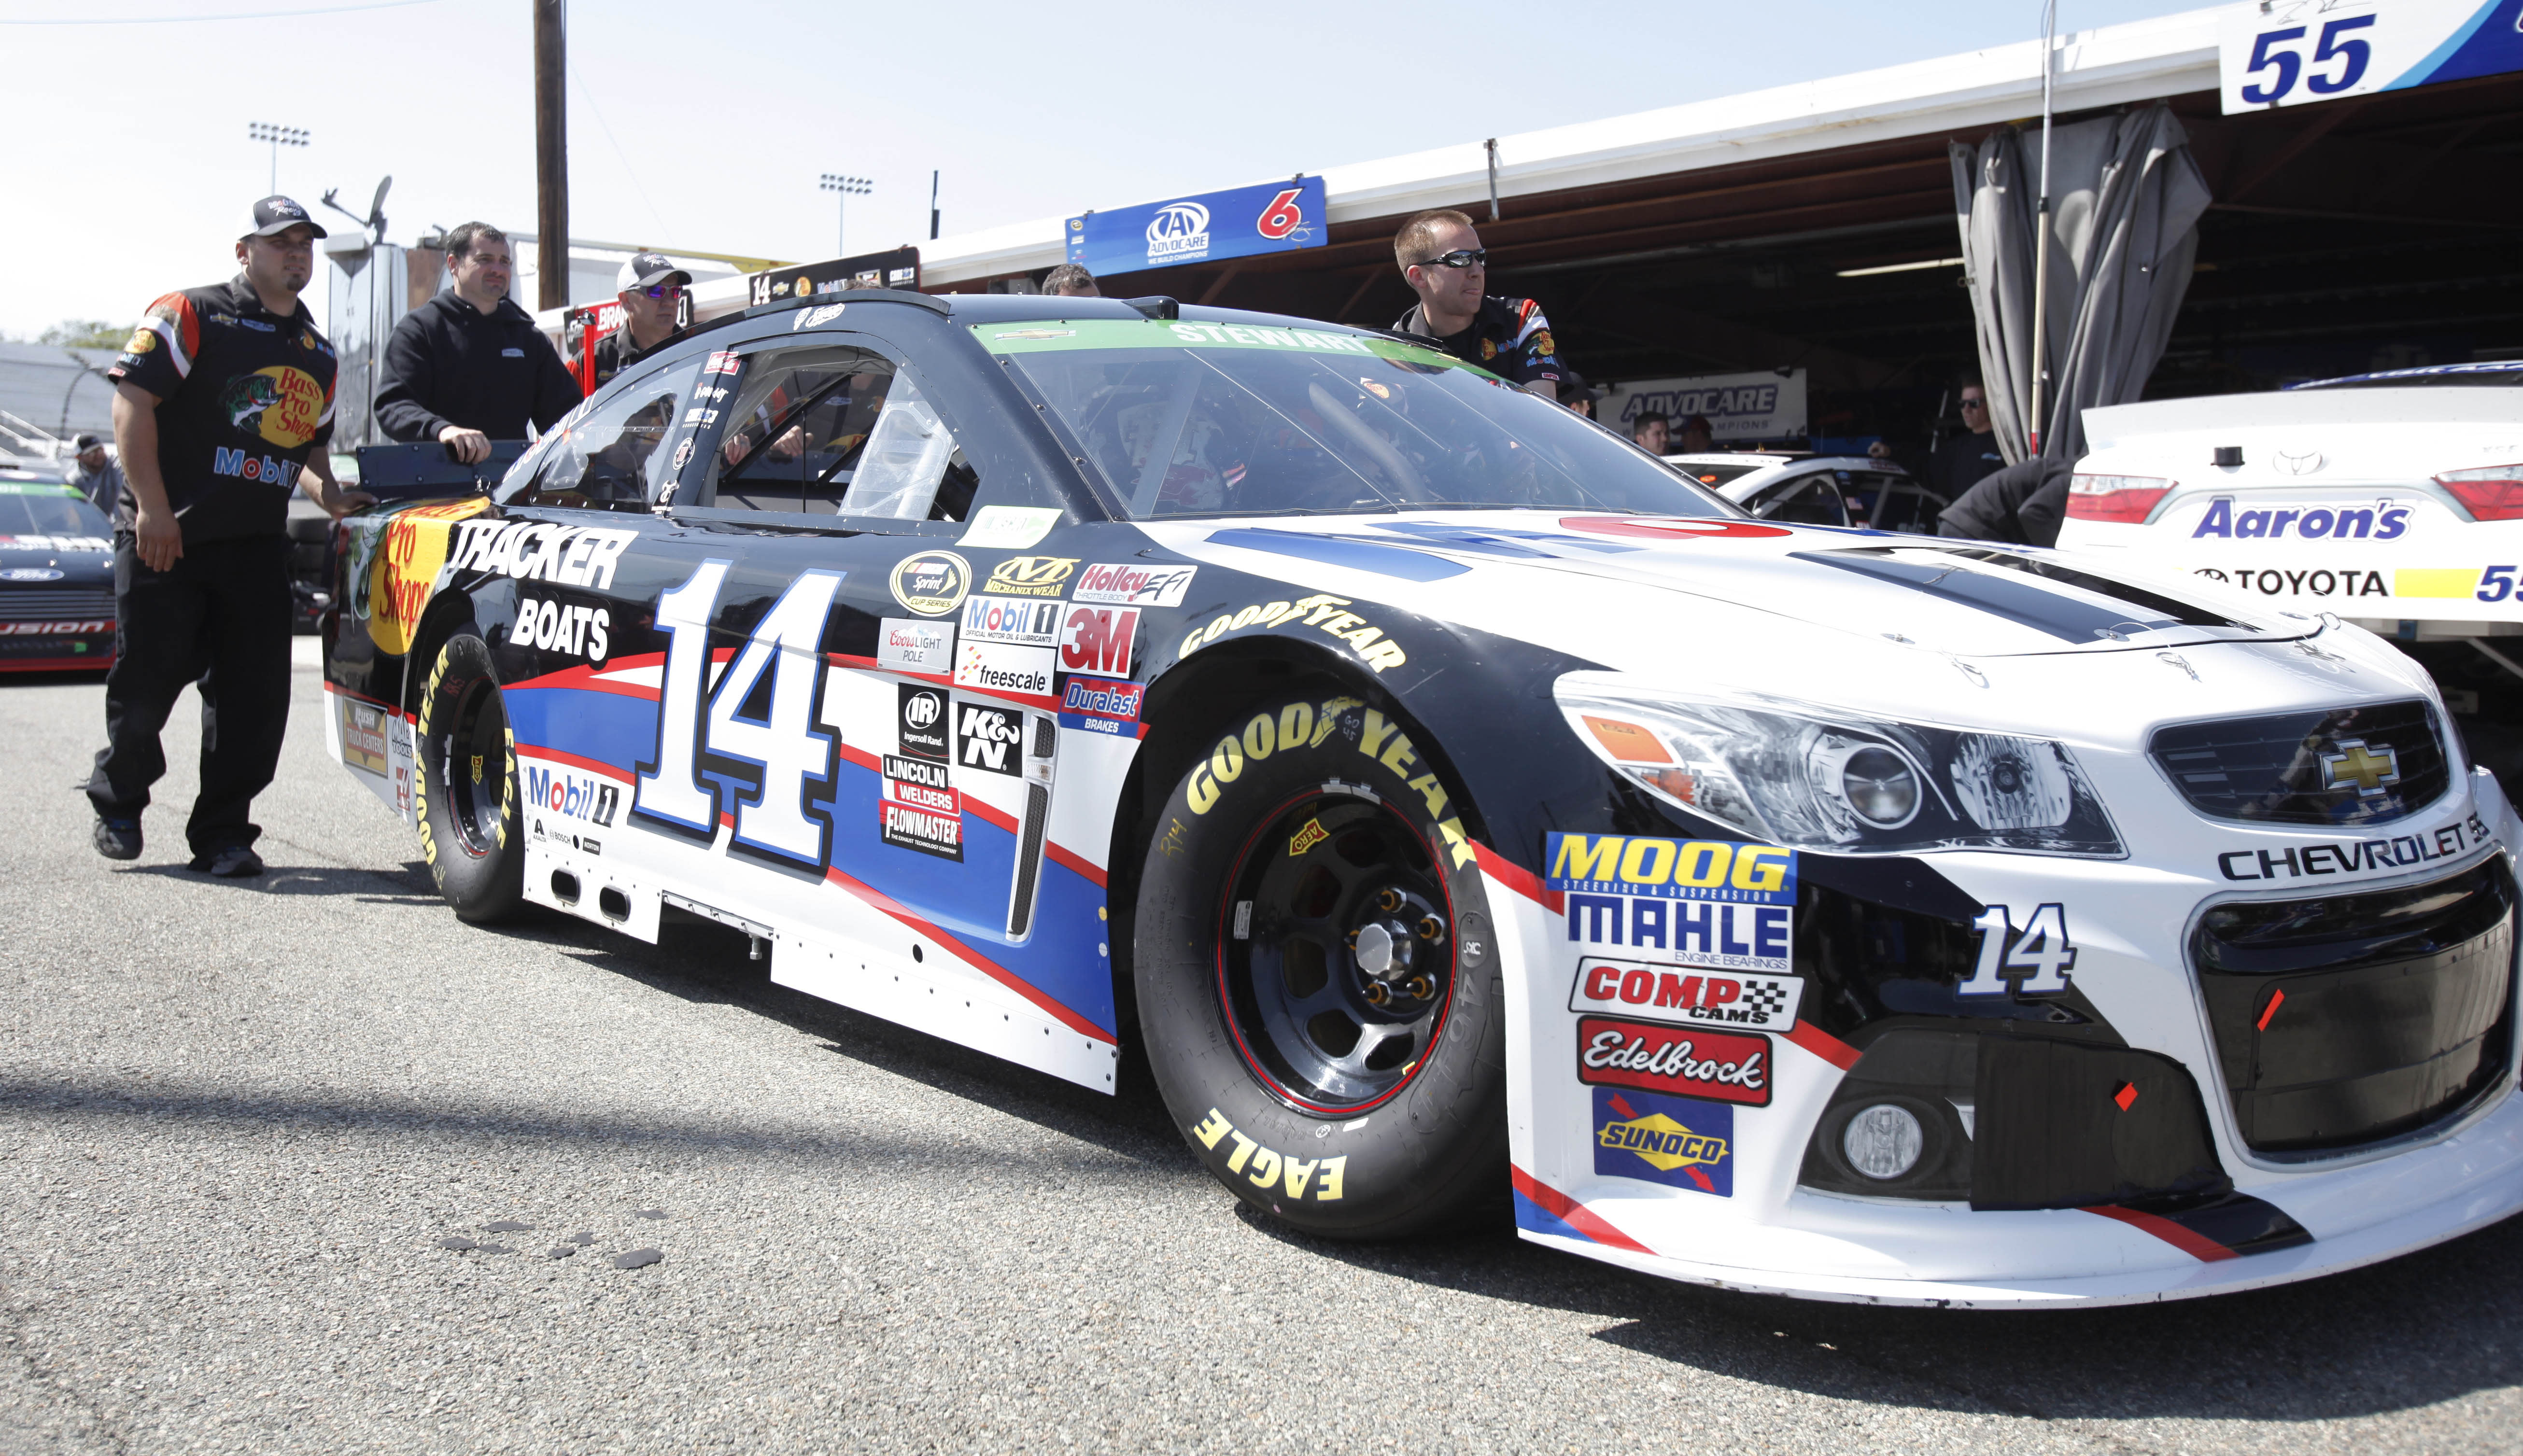 Tony Stewart's solid run ends with a spin